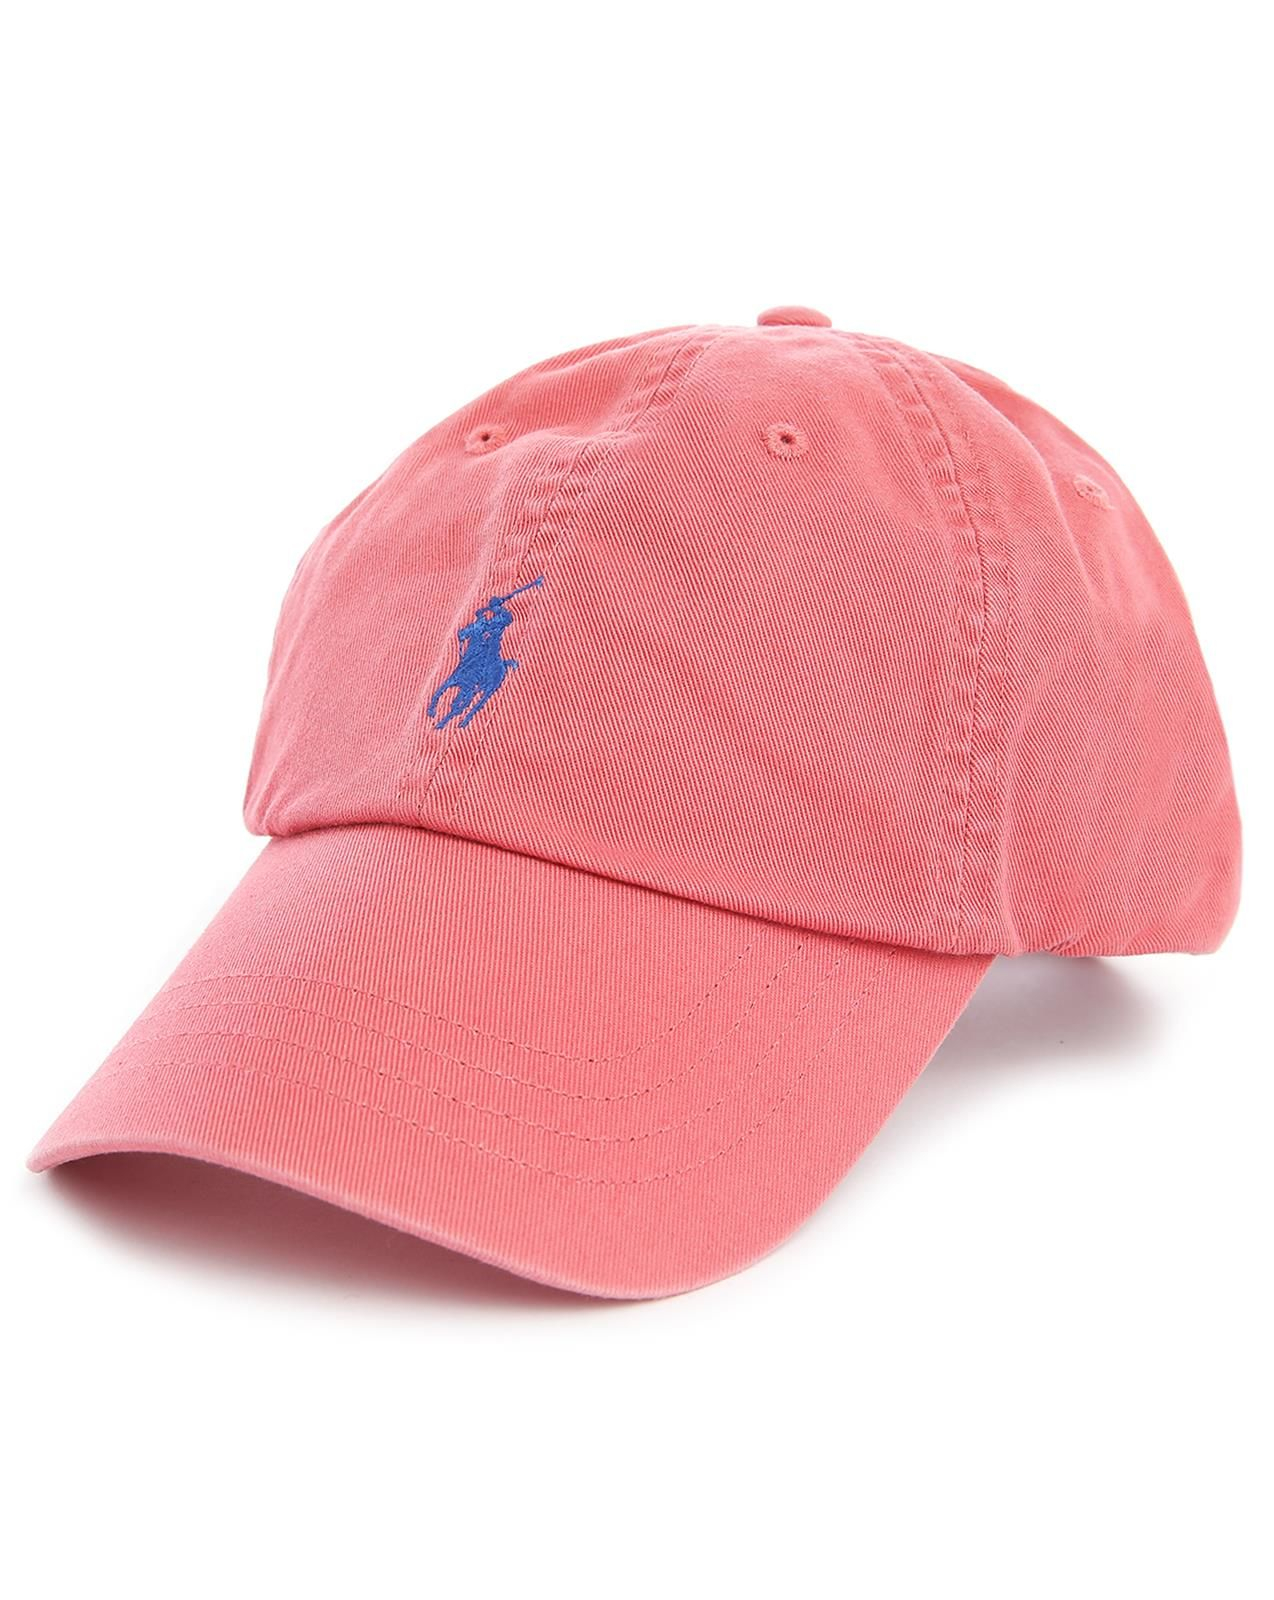 polo ralph lauren pink classic sport cap in pink for men. Black Bedroom Furniture Sets. Home Design Ideas